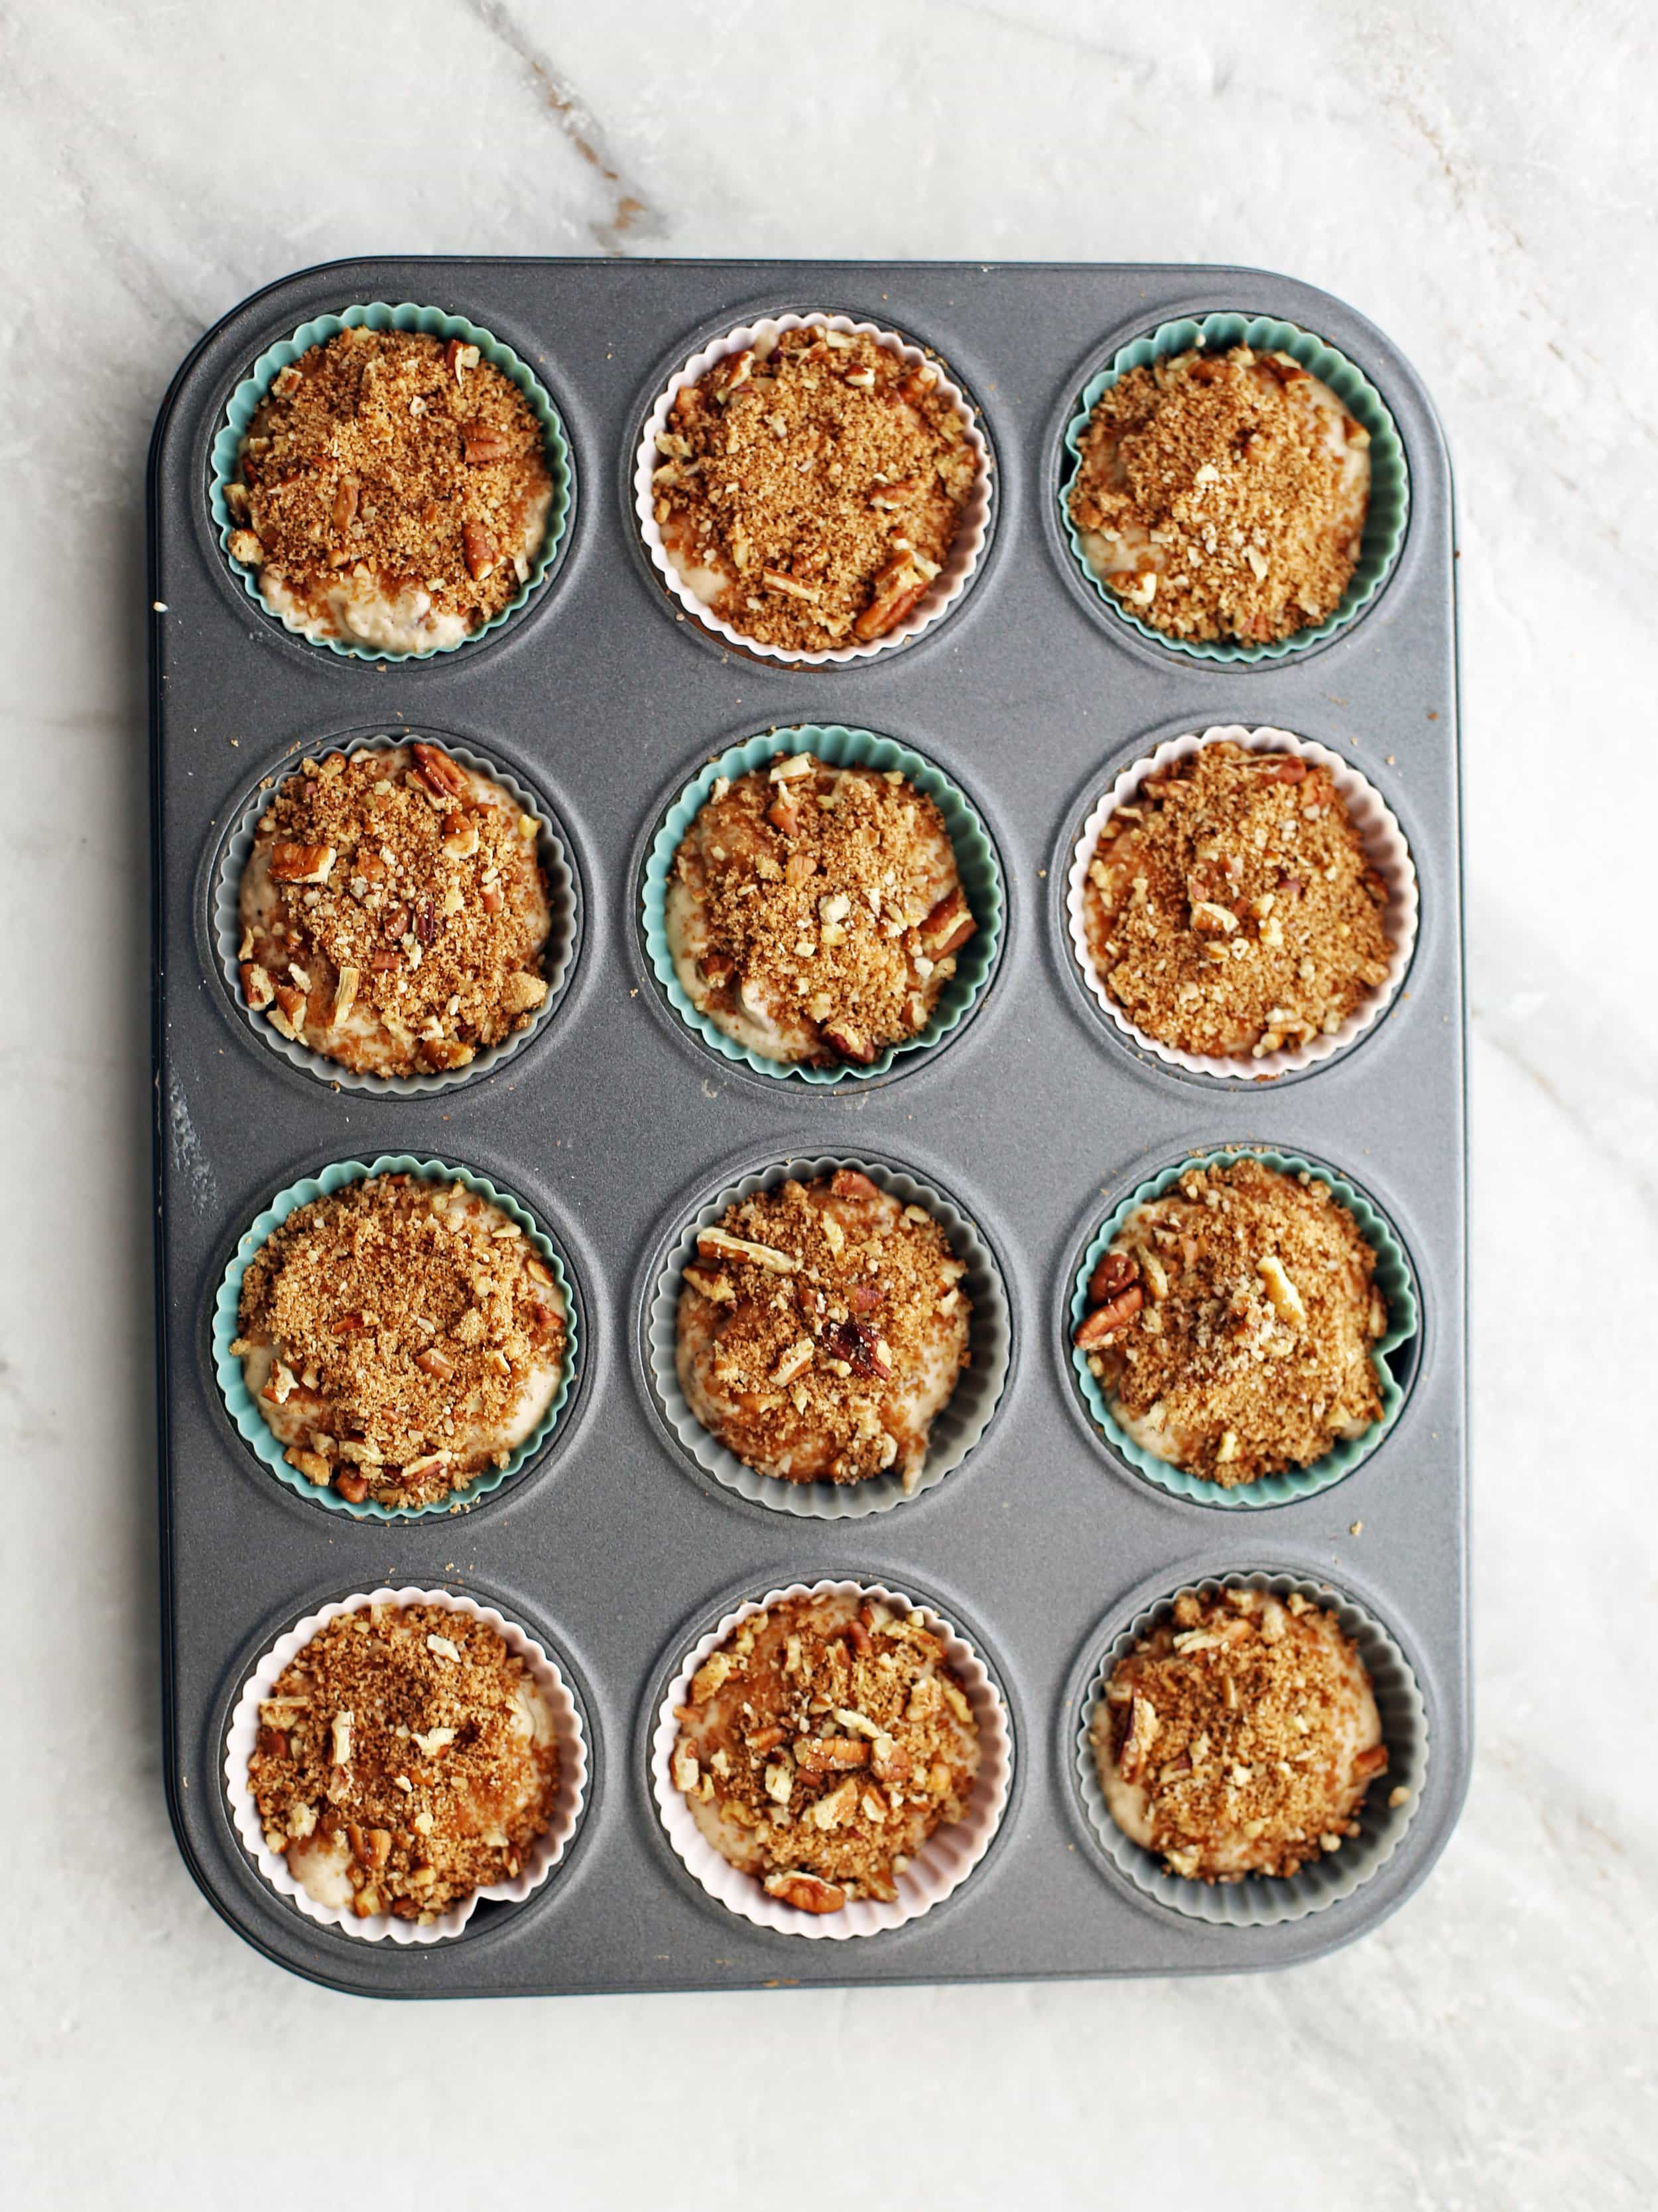 Pre-baked cinnamon pecan applesauce muffins in a muffin baking pan.